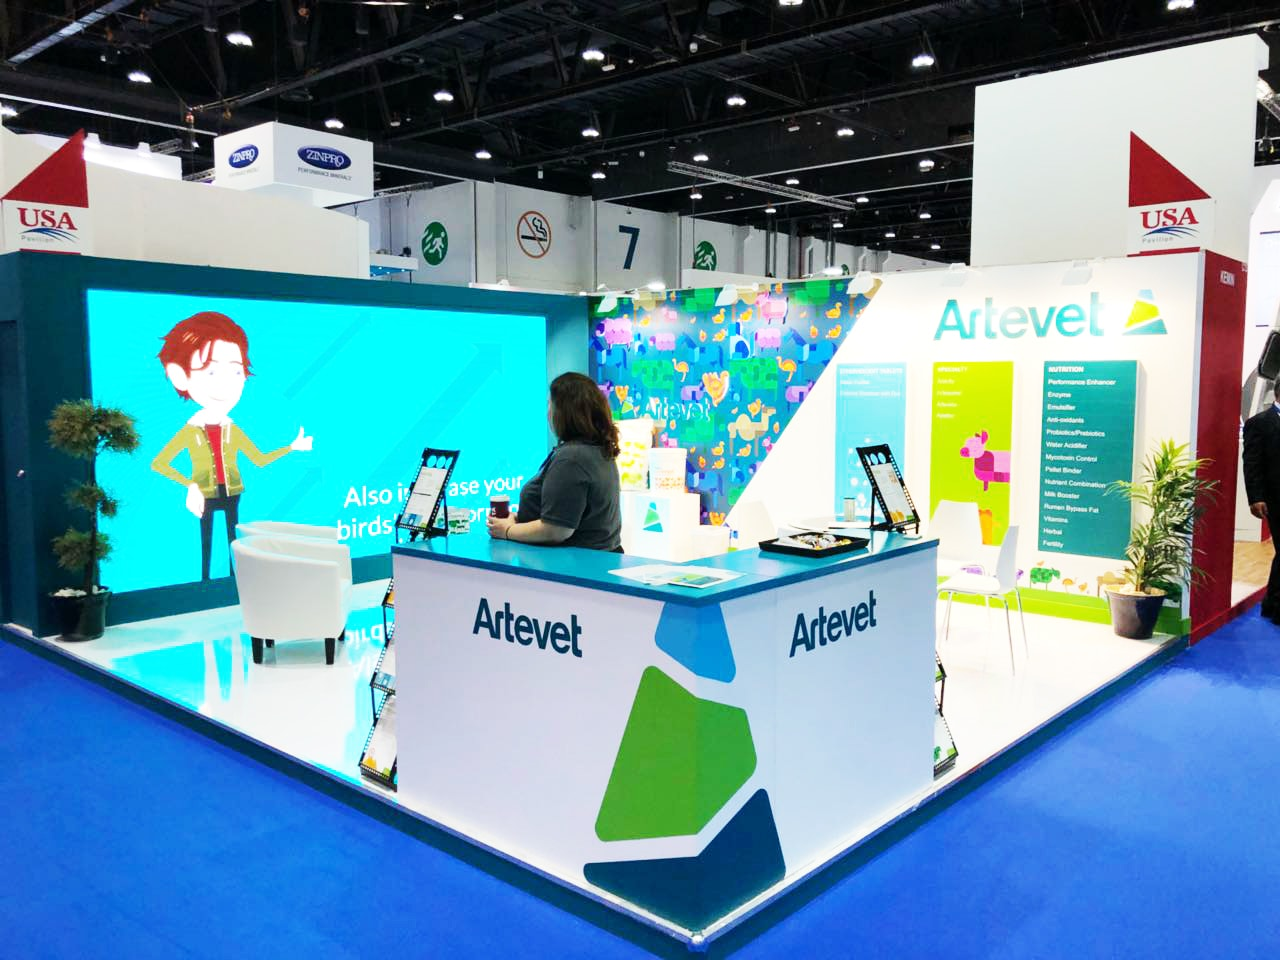 Exhibition Stand Design And Build : Exhibition stand build and design for artevet